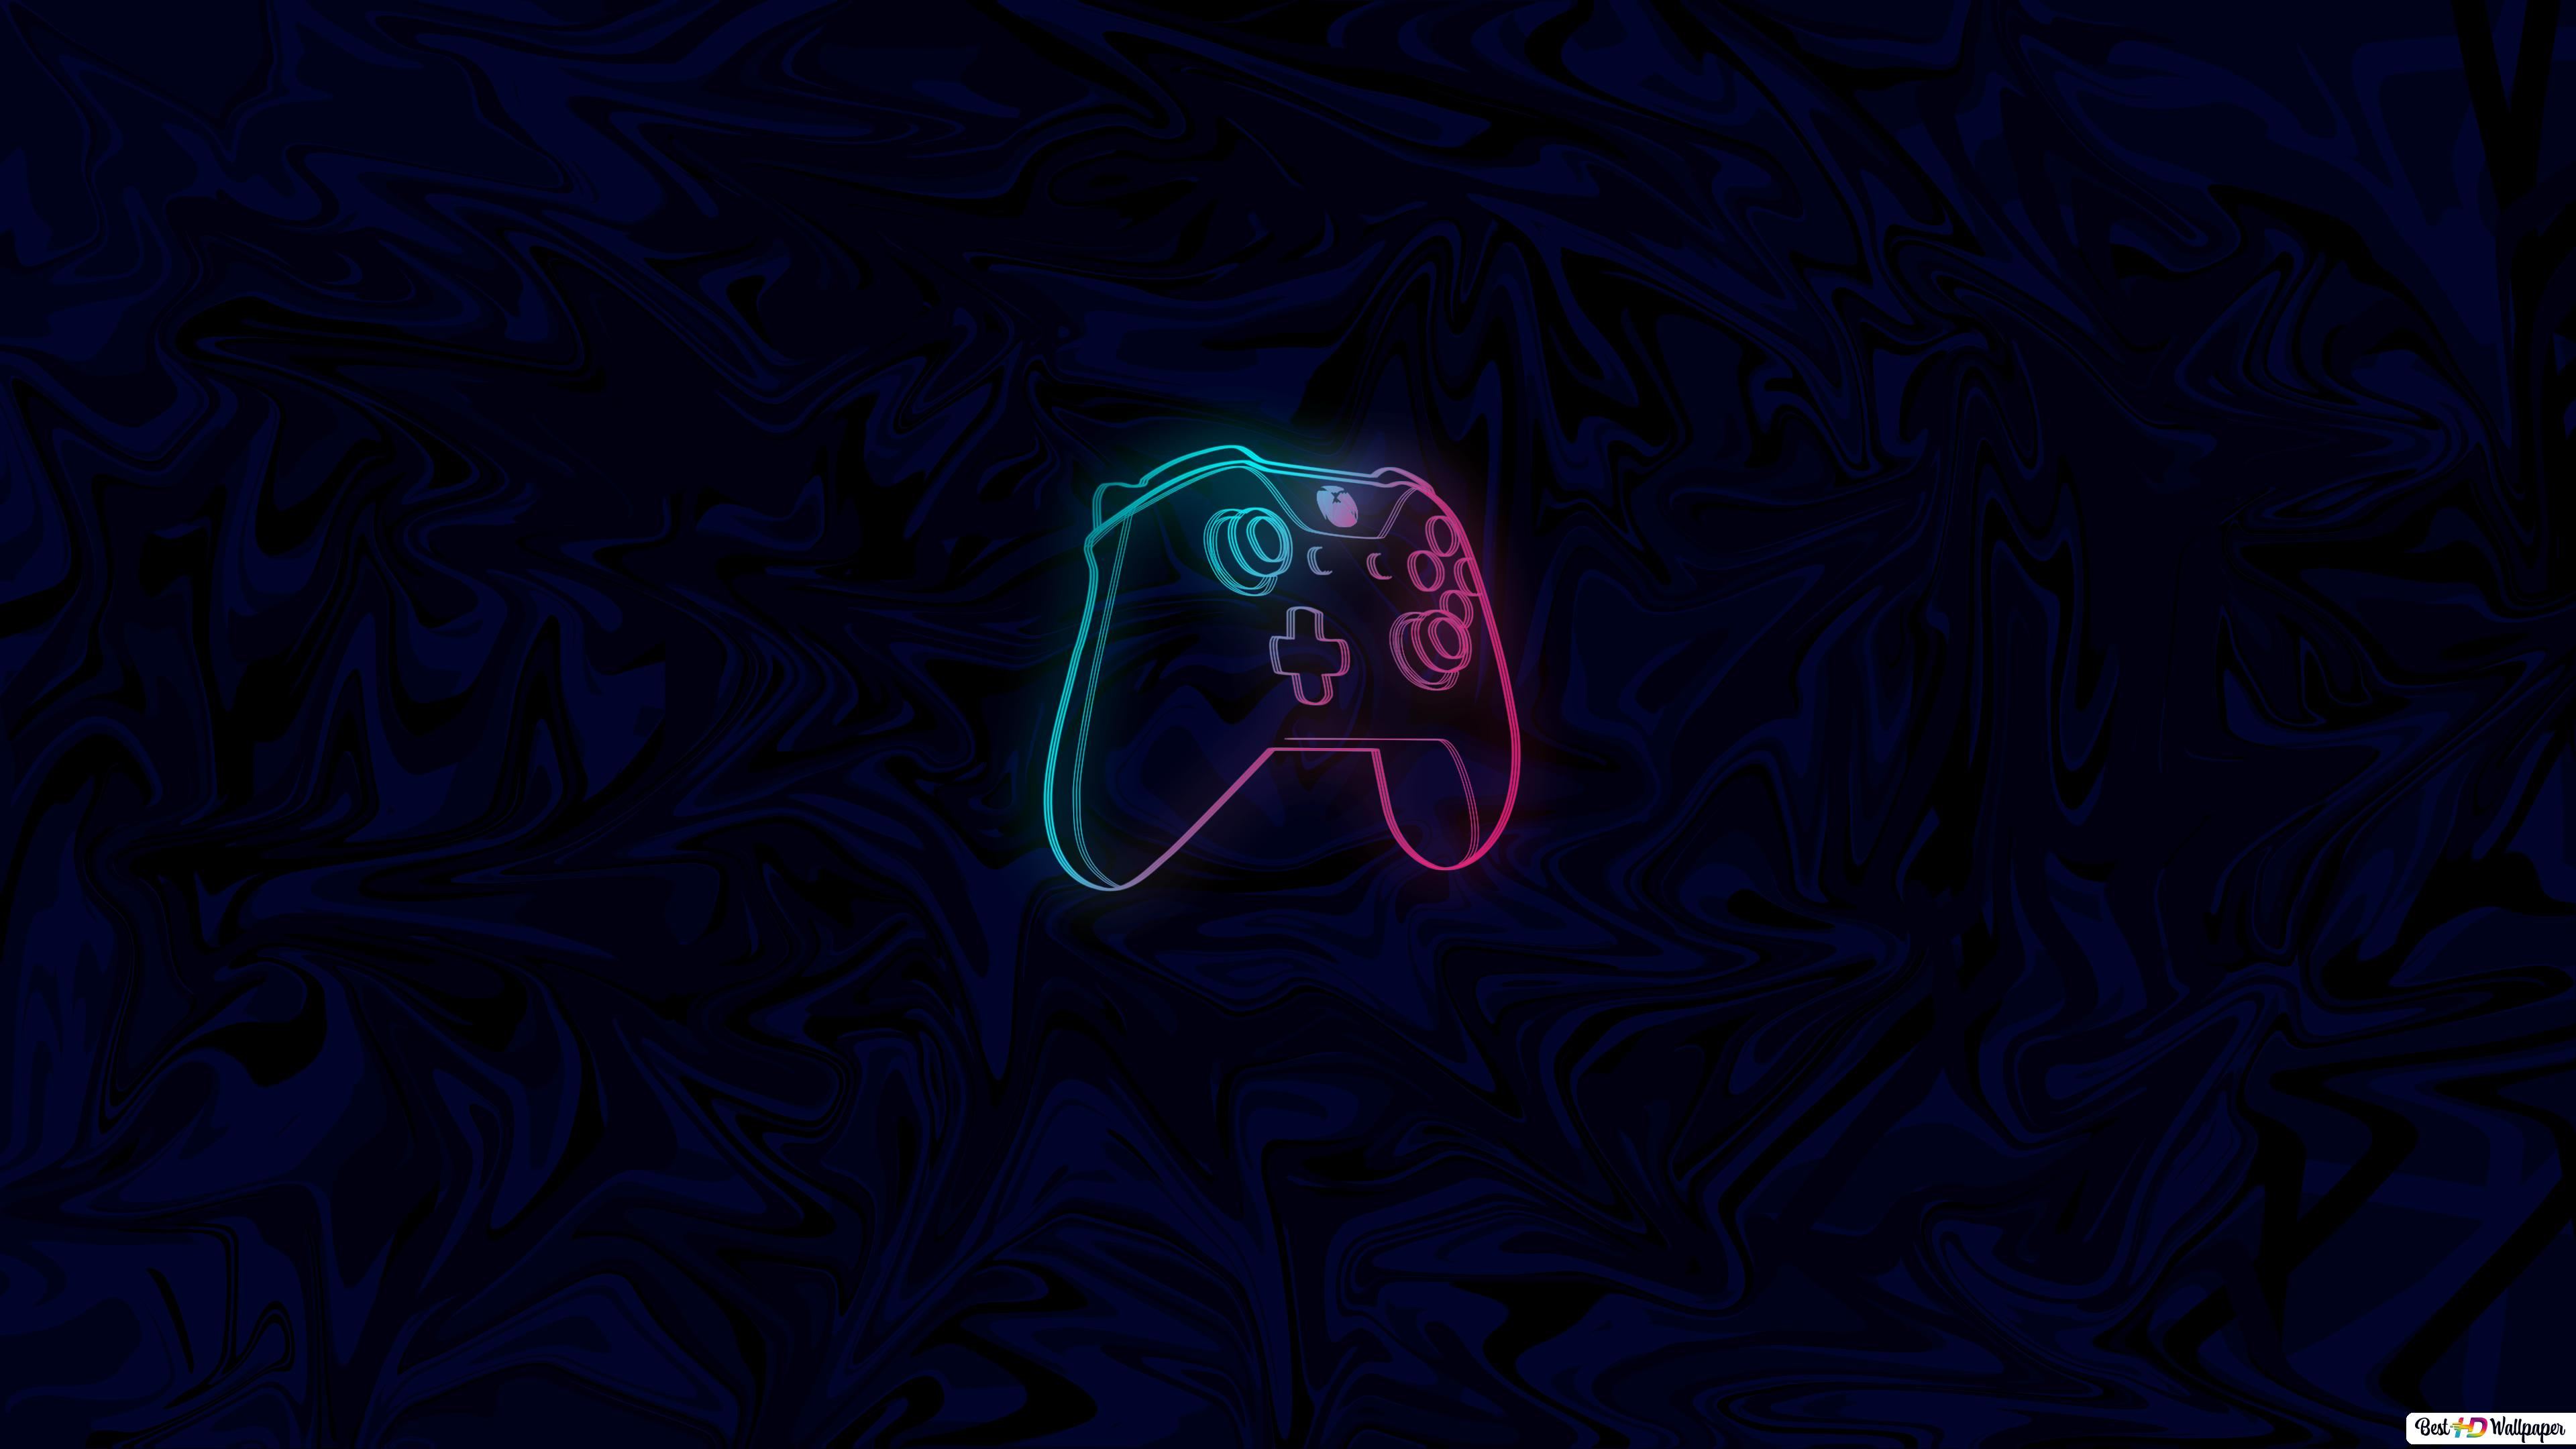 Xbox Controller Minimal Abstract Wallpaper Hd Wallpaper Download